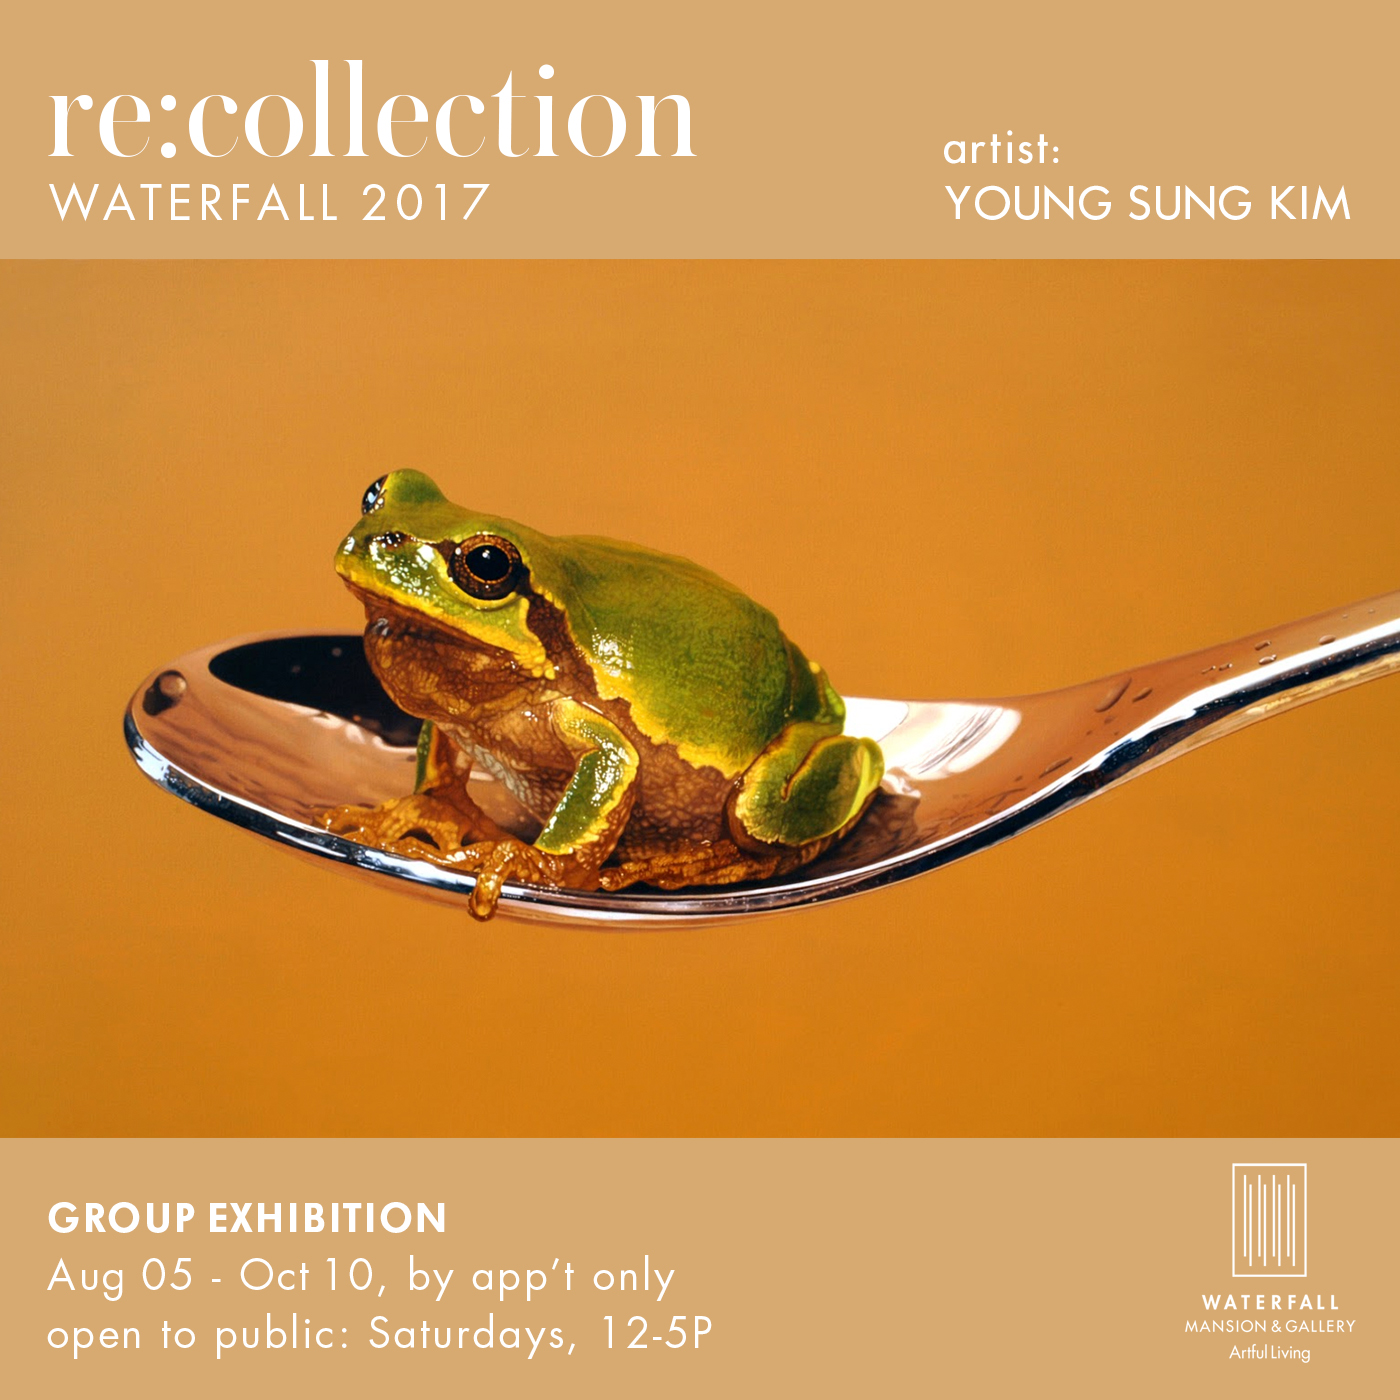 ReCollection Flyer (ysk).jpg